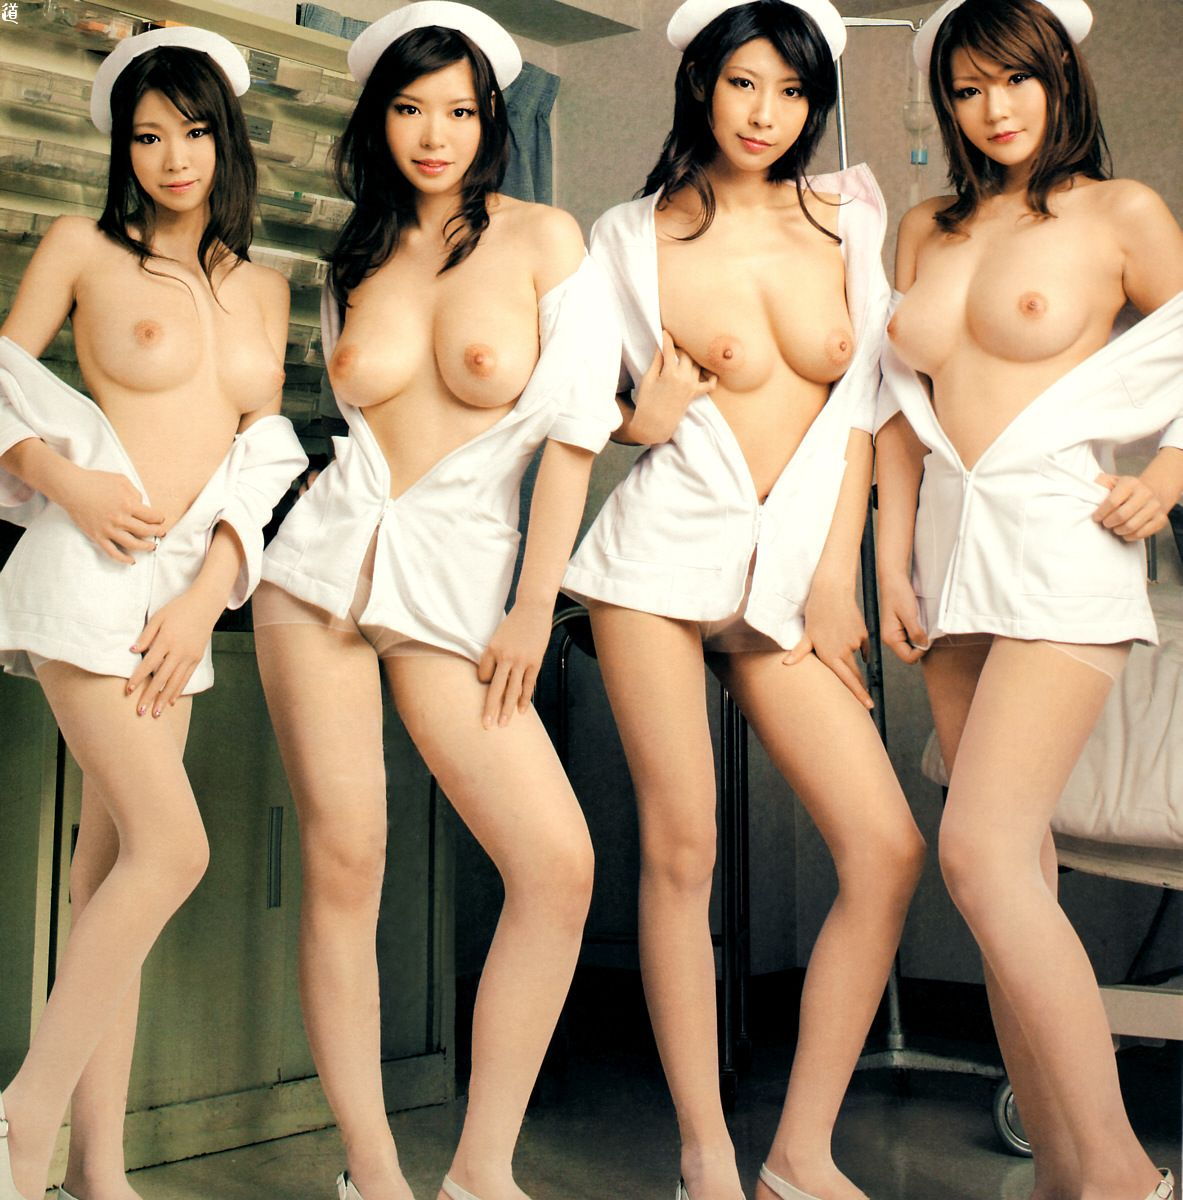 groups-of-female-nudist-with-big-boobs-winx-club-girls-sexy-naked